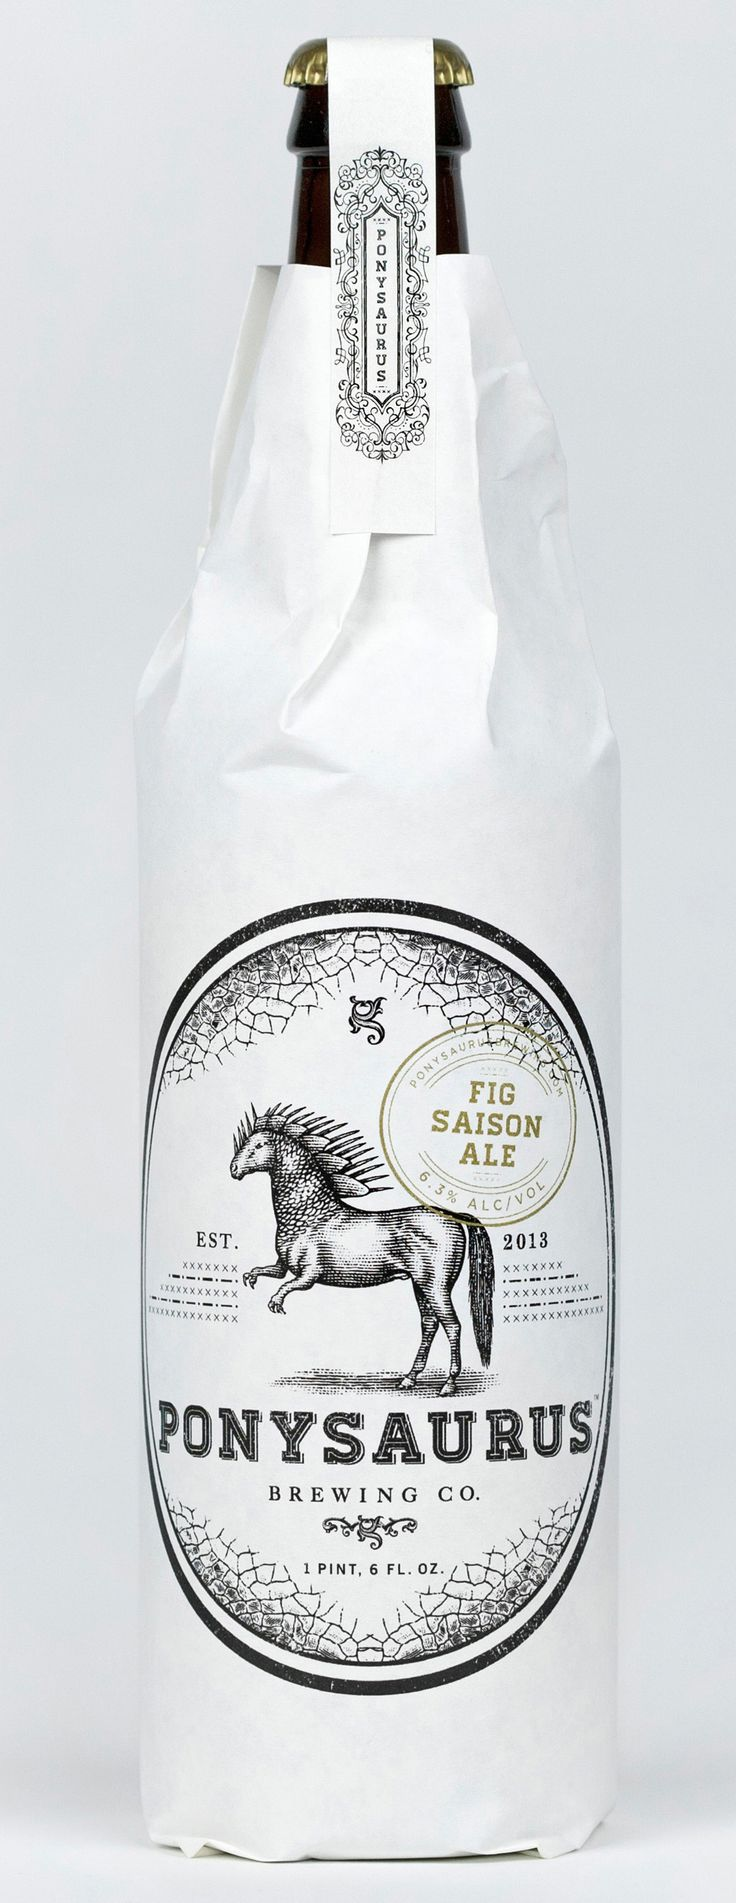 New Logo and Packaging for Ponysaurus by Baldwin&, illustration by Steven Noble